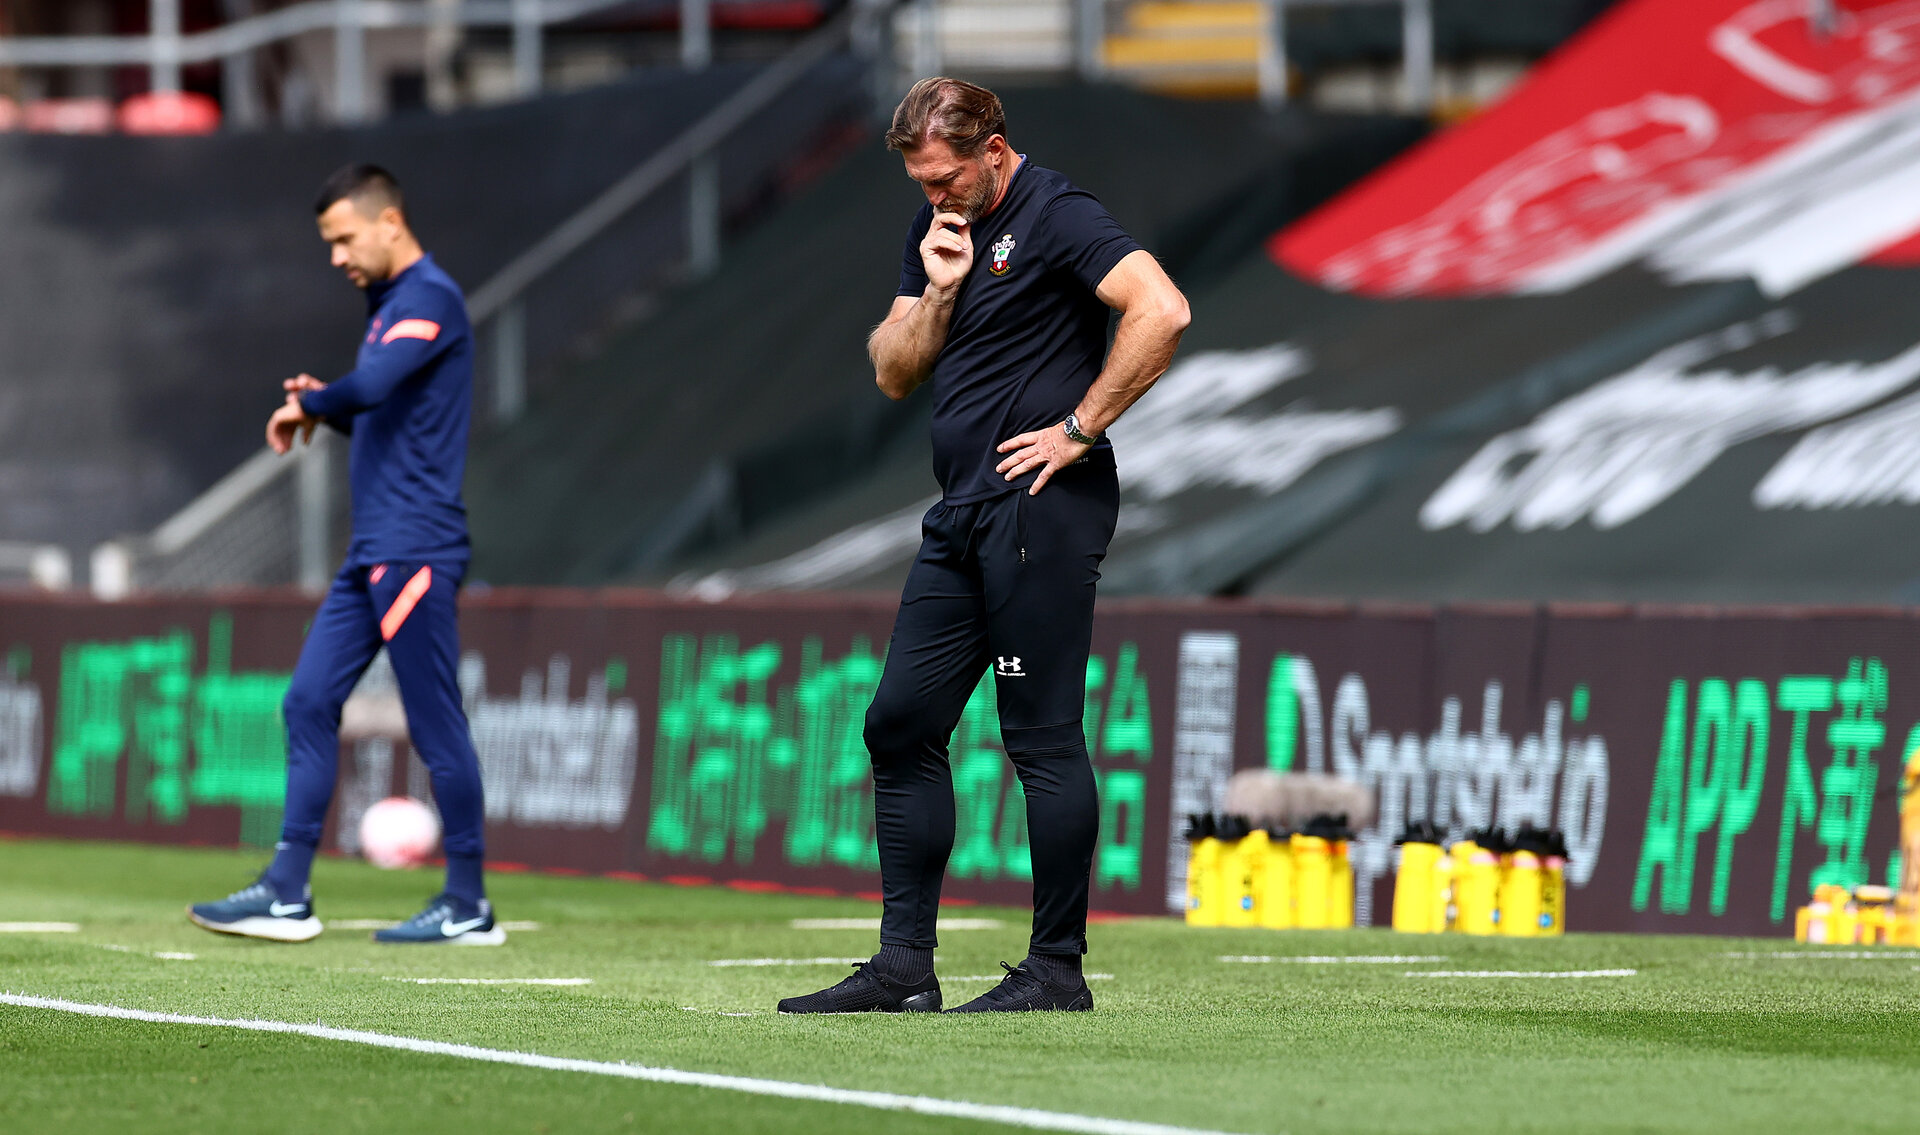 SOUTHAMPTON, ENGLAND - SEPTEMBER 20: Ralph Hasenhüttl of Southampton during the Premier League match between Southampton and Tottenham Hotspur at St Mary's Stadium on September 20, 2020 in Southampton, United Kingdom. (Photo by Matt Watson/Southampton FC via Getty Images)